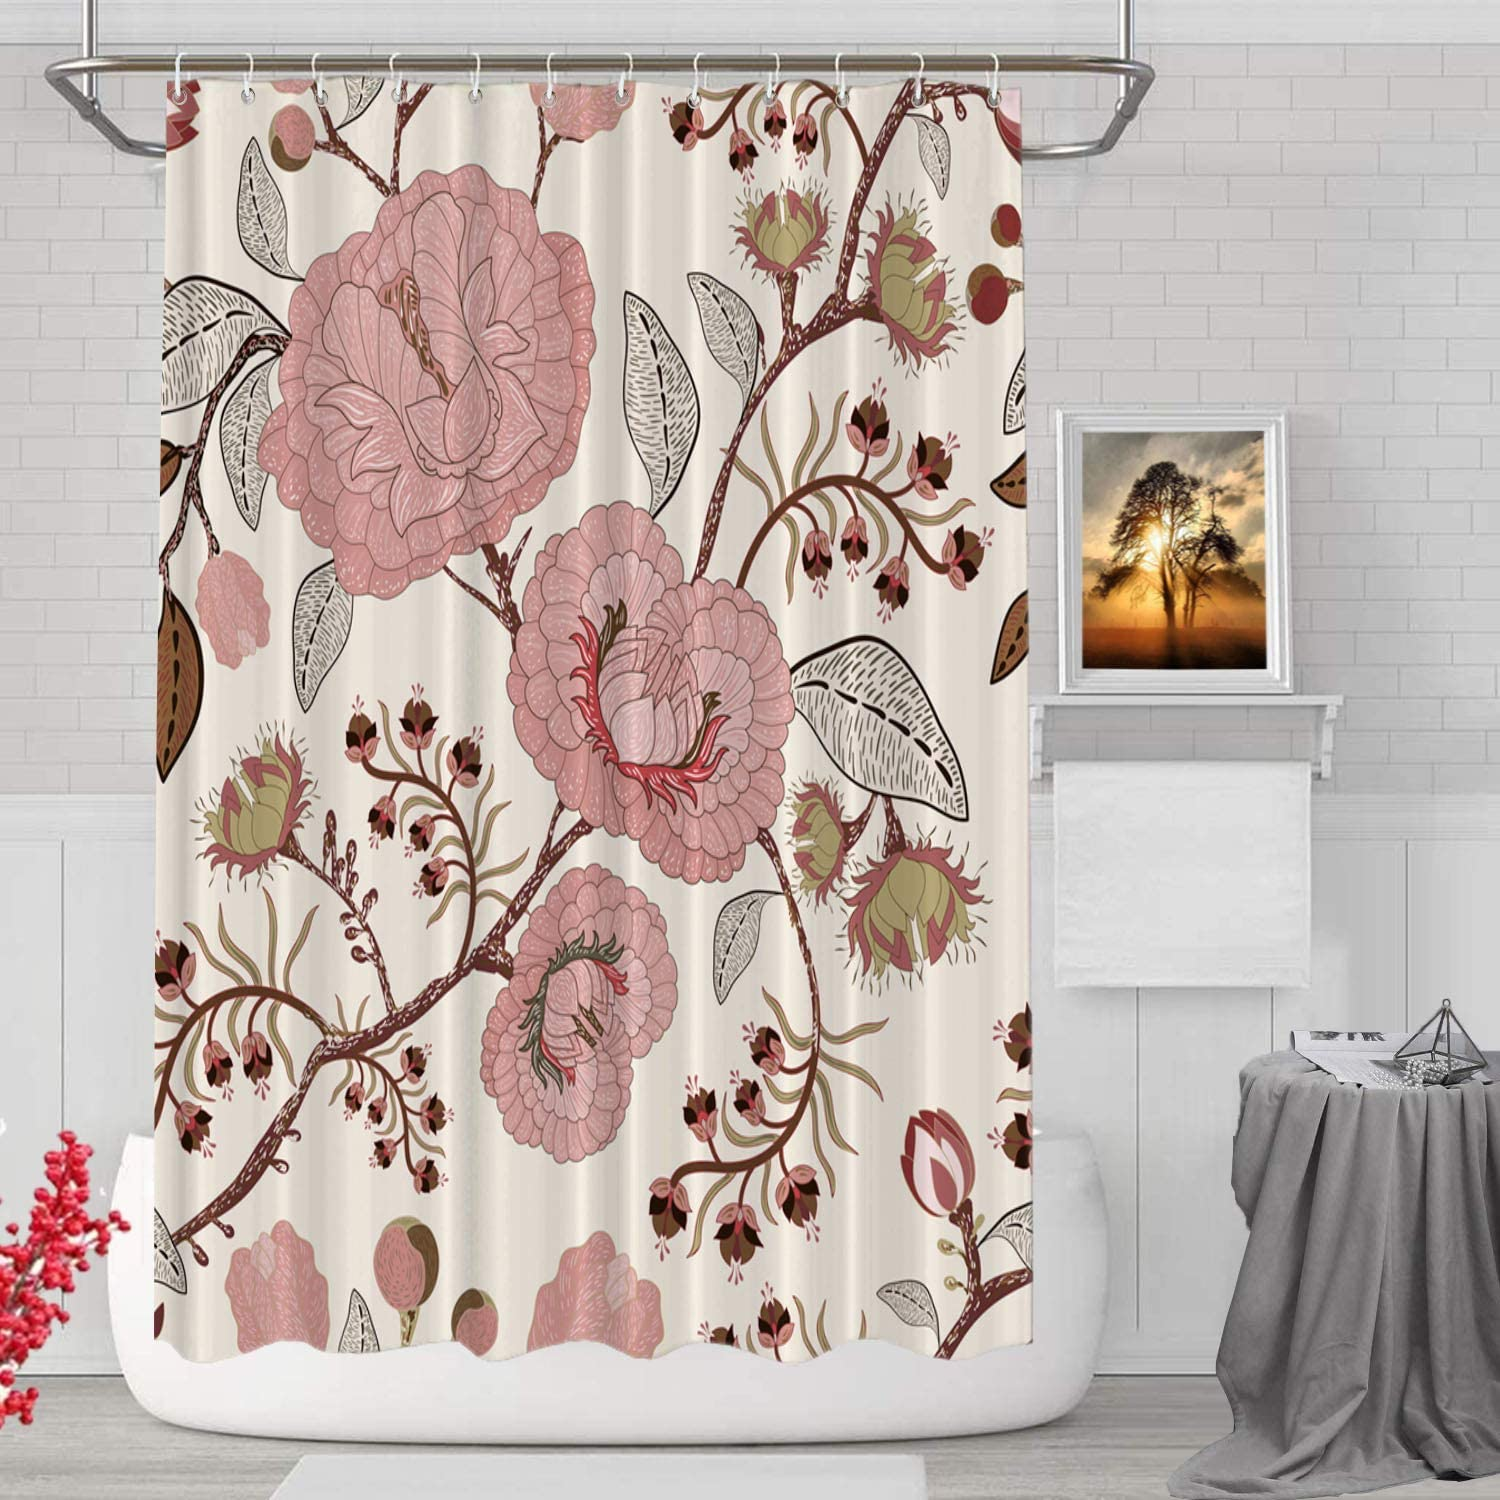 BaoNews Pink Beige Roses Floral Decorative Shower Curtain, Rose Pattern in The Art Nouveau Style Decor Shower Curtain for Shower Stall Bathroom Resistant Waterproof Standard Size 72x72 Inch